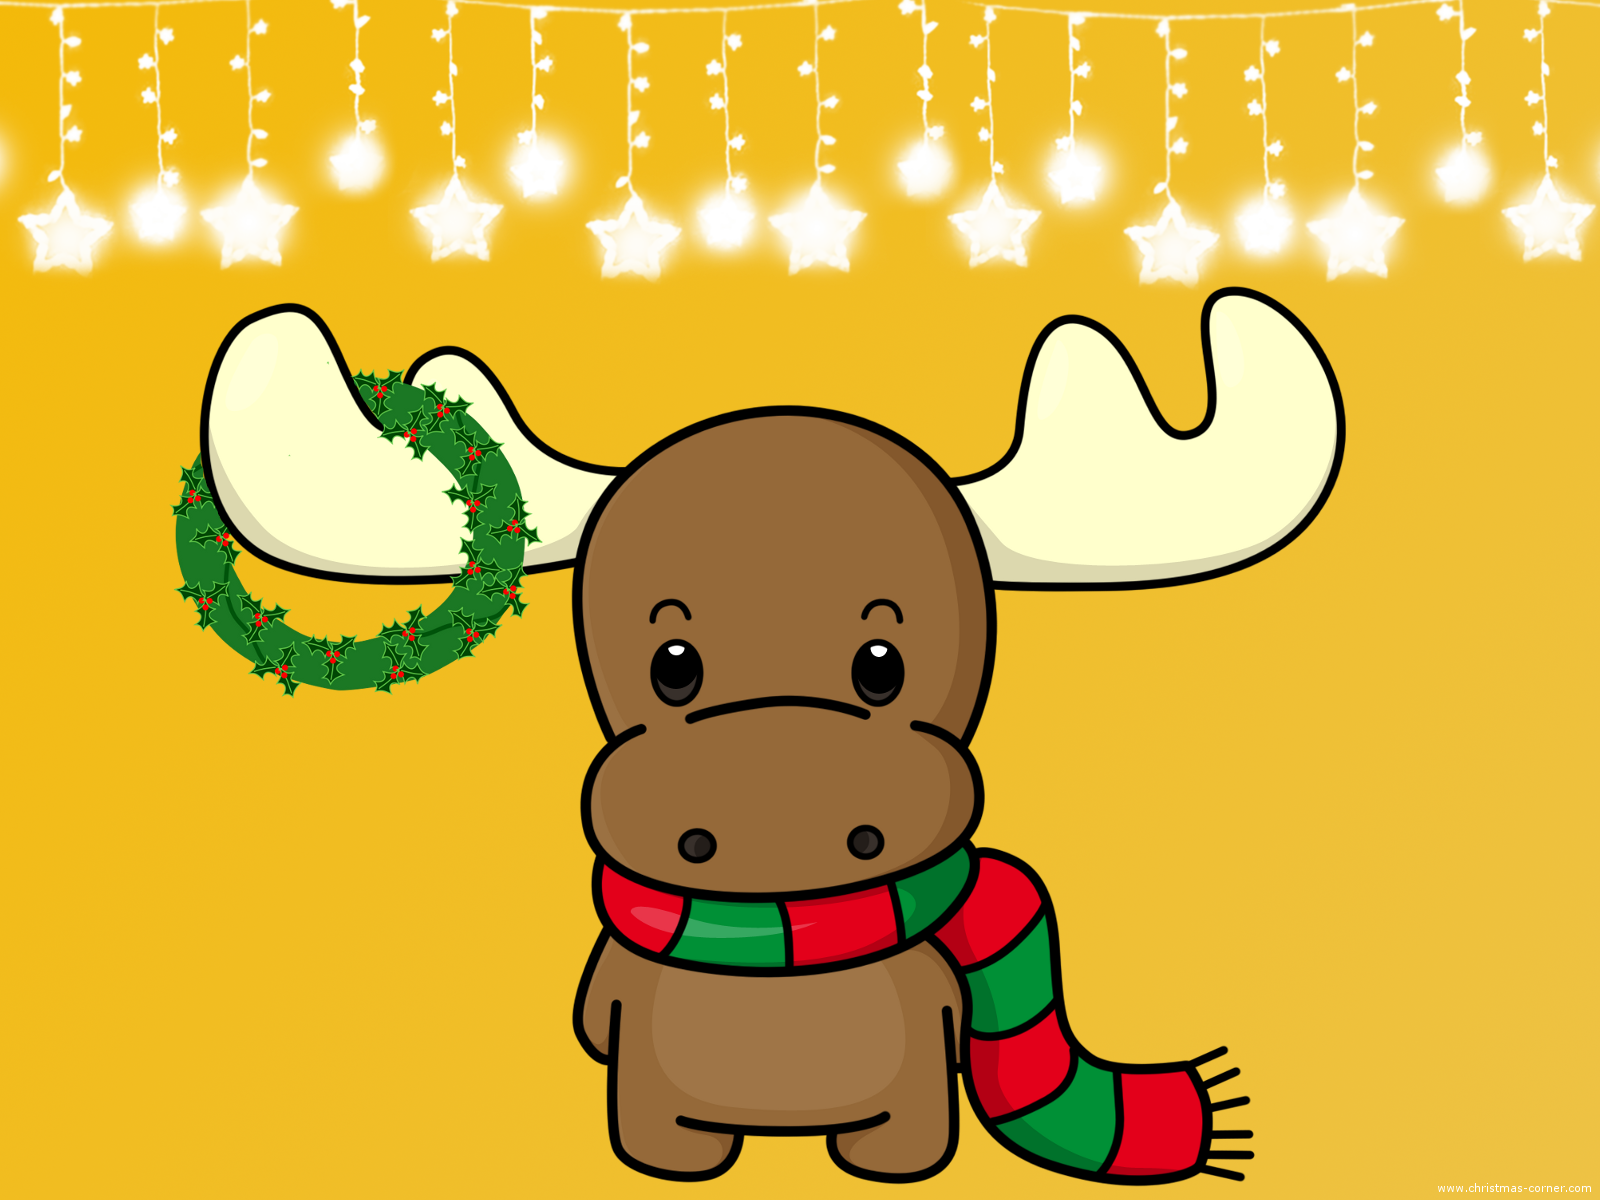 Reminder: Junior Holiday Party is today (Sunday, Dec. 16)